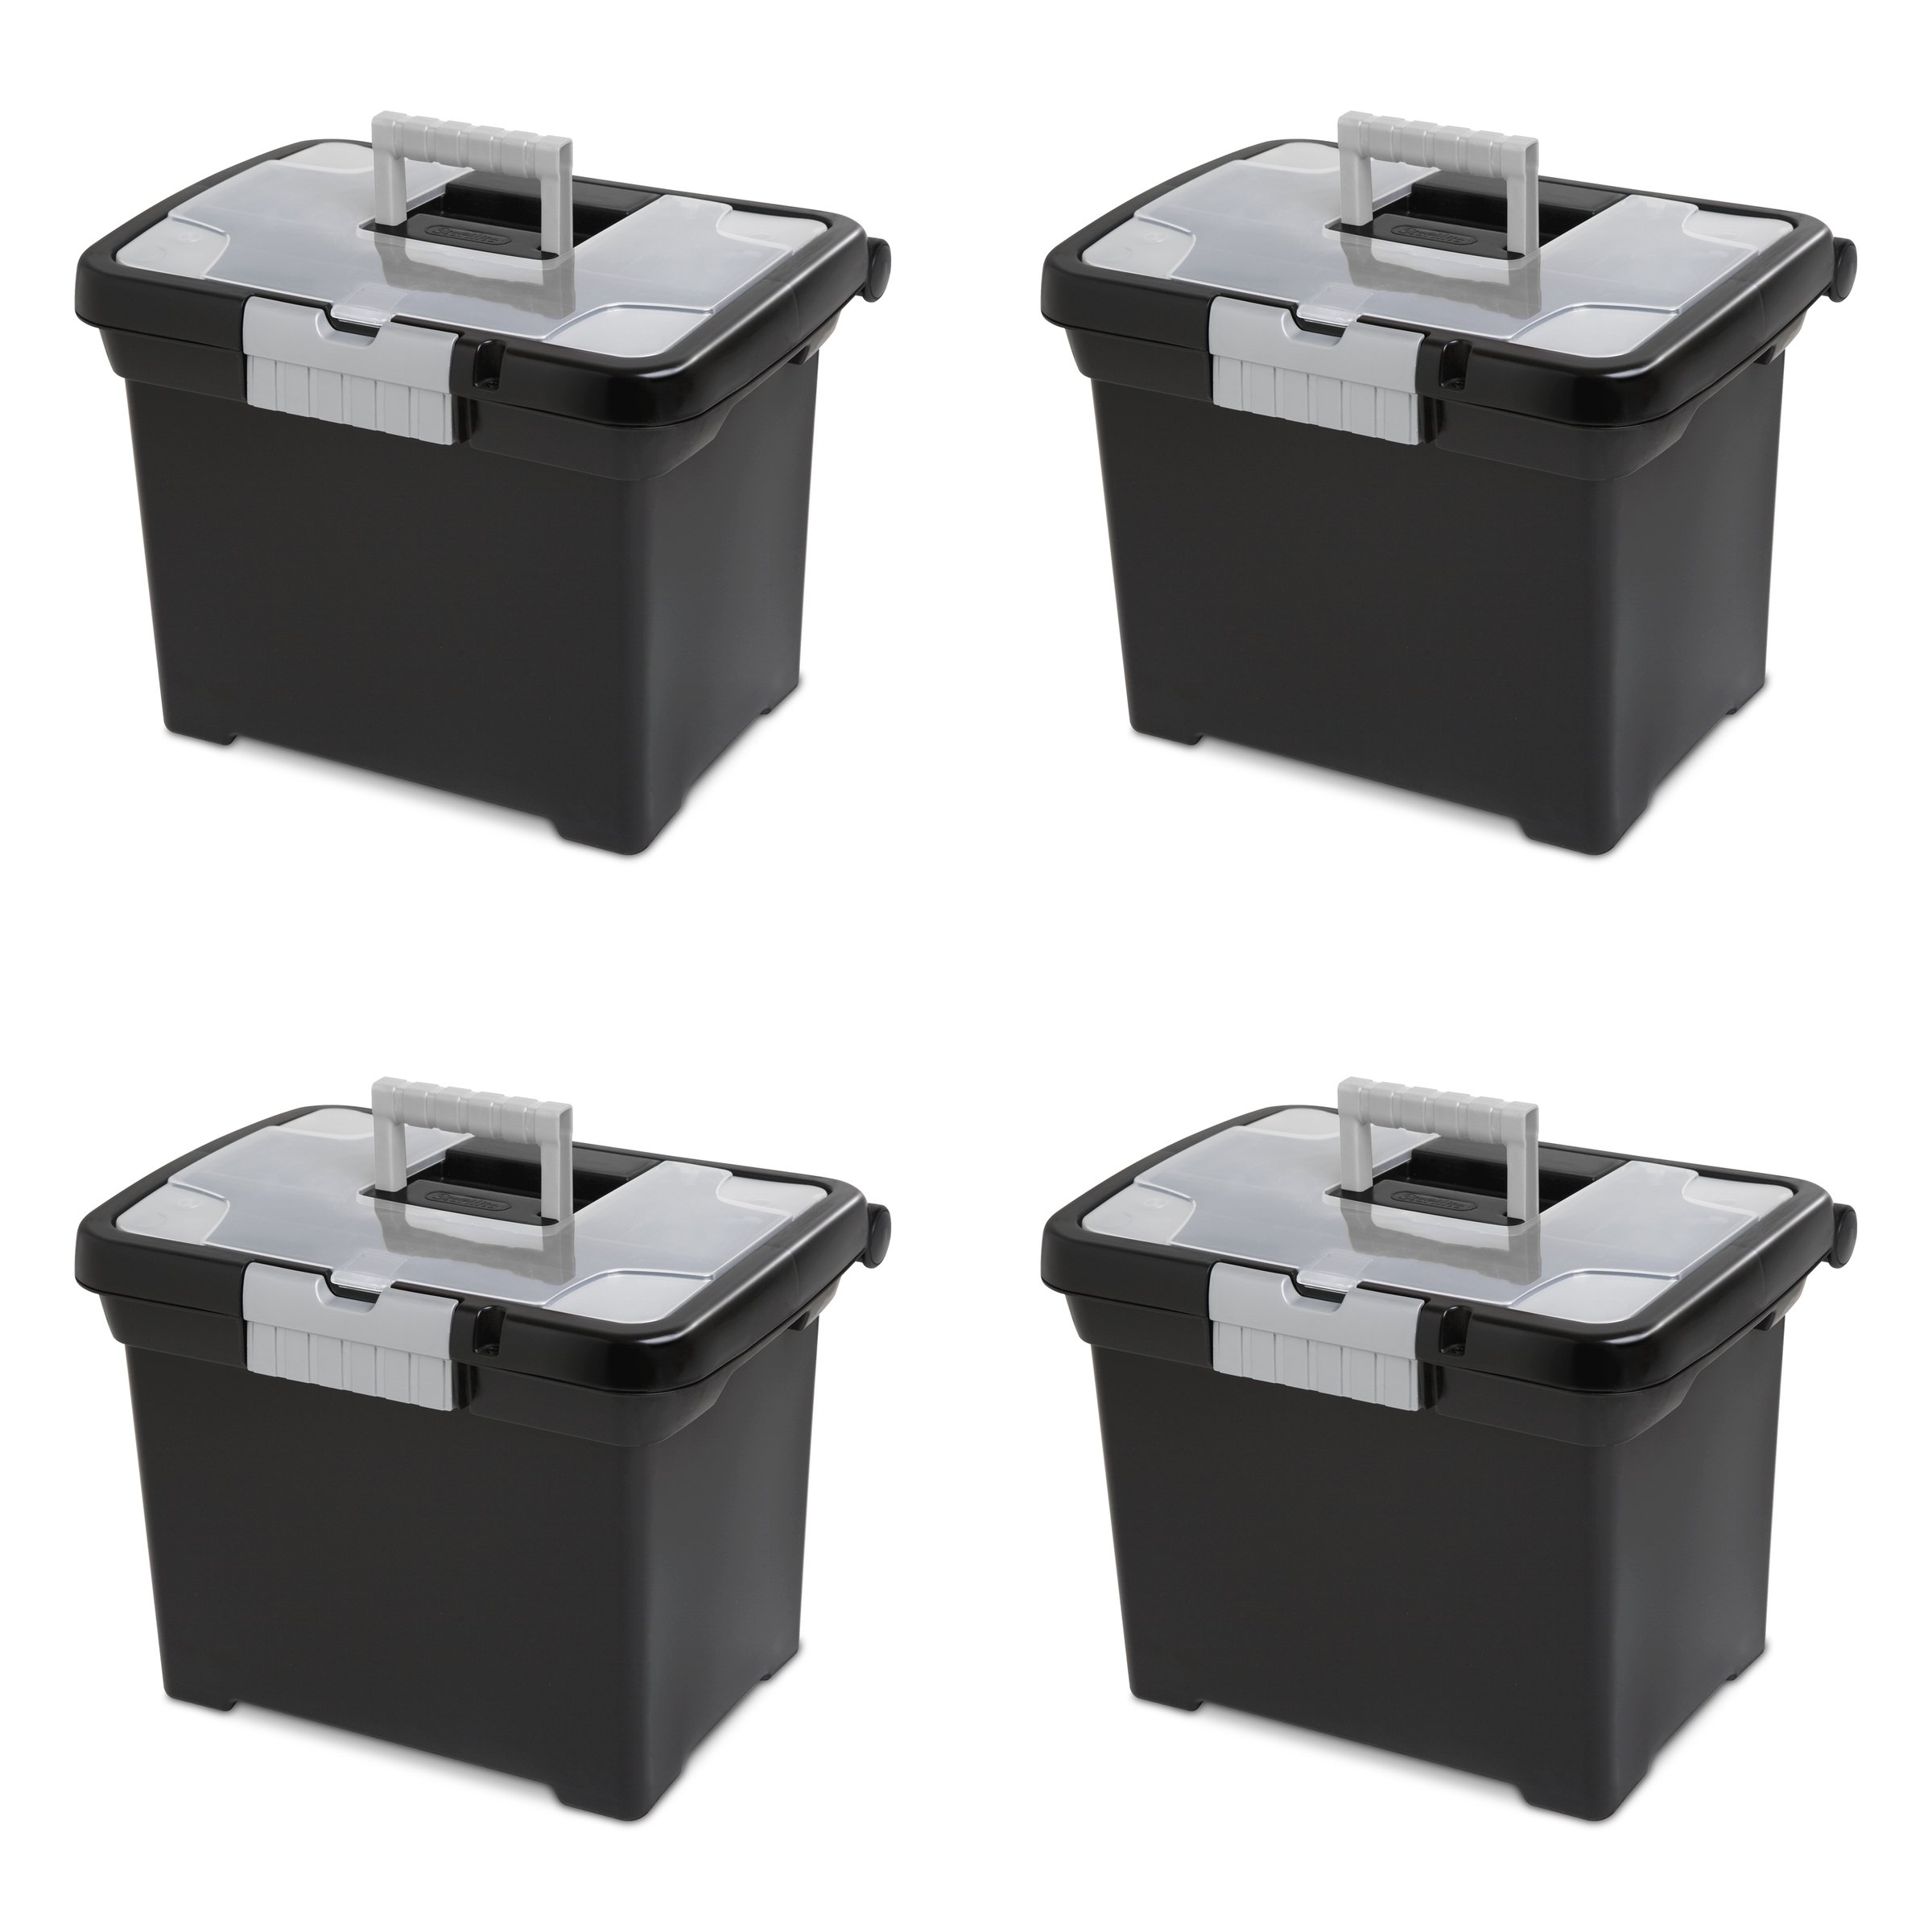 Sterilite 18719004 Portable File Box, Black with Clear Storage Lid and Titanium Handle and Latch, 4-Pack by STERILITE